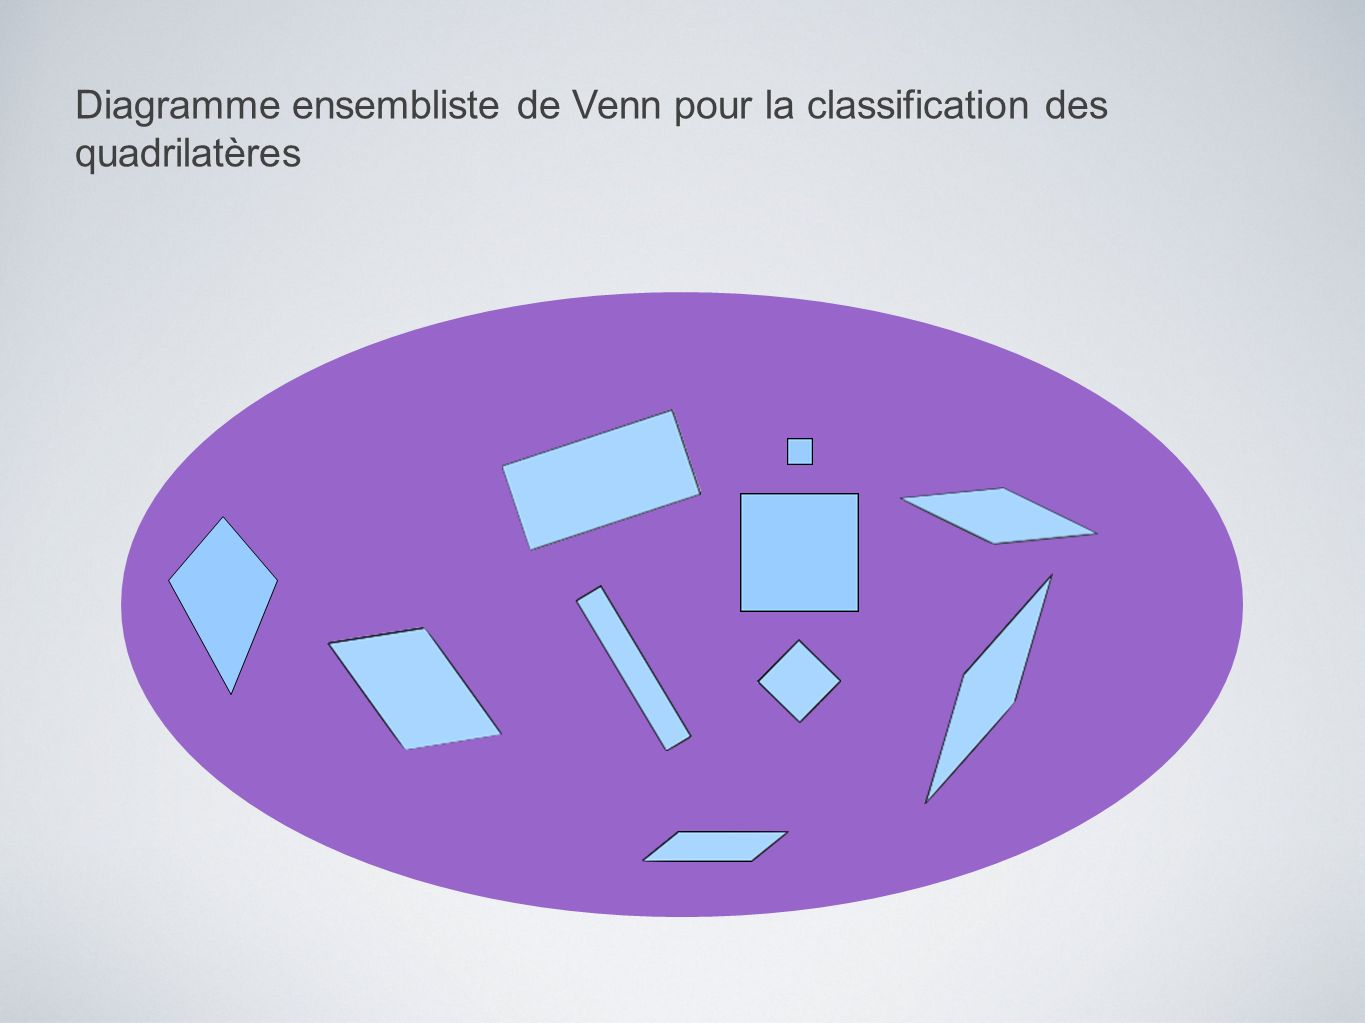 Diagramme ensembliste de Venn pour la classification des quadrilatères